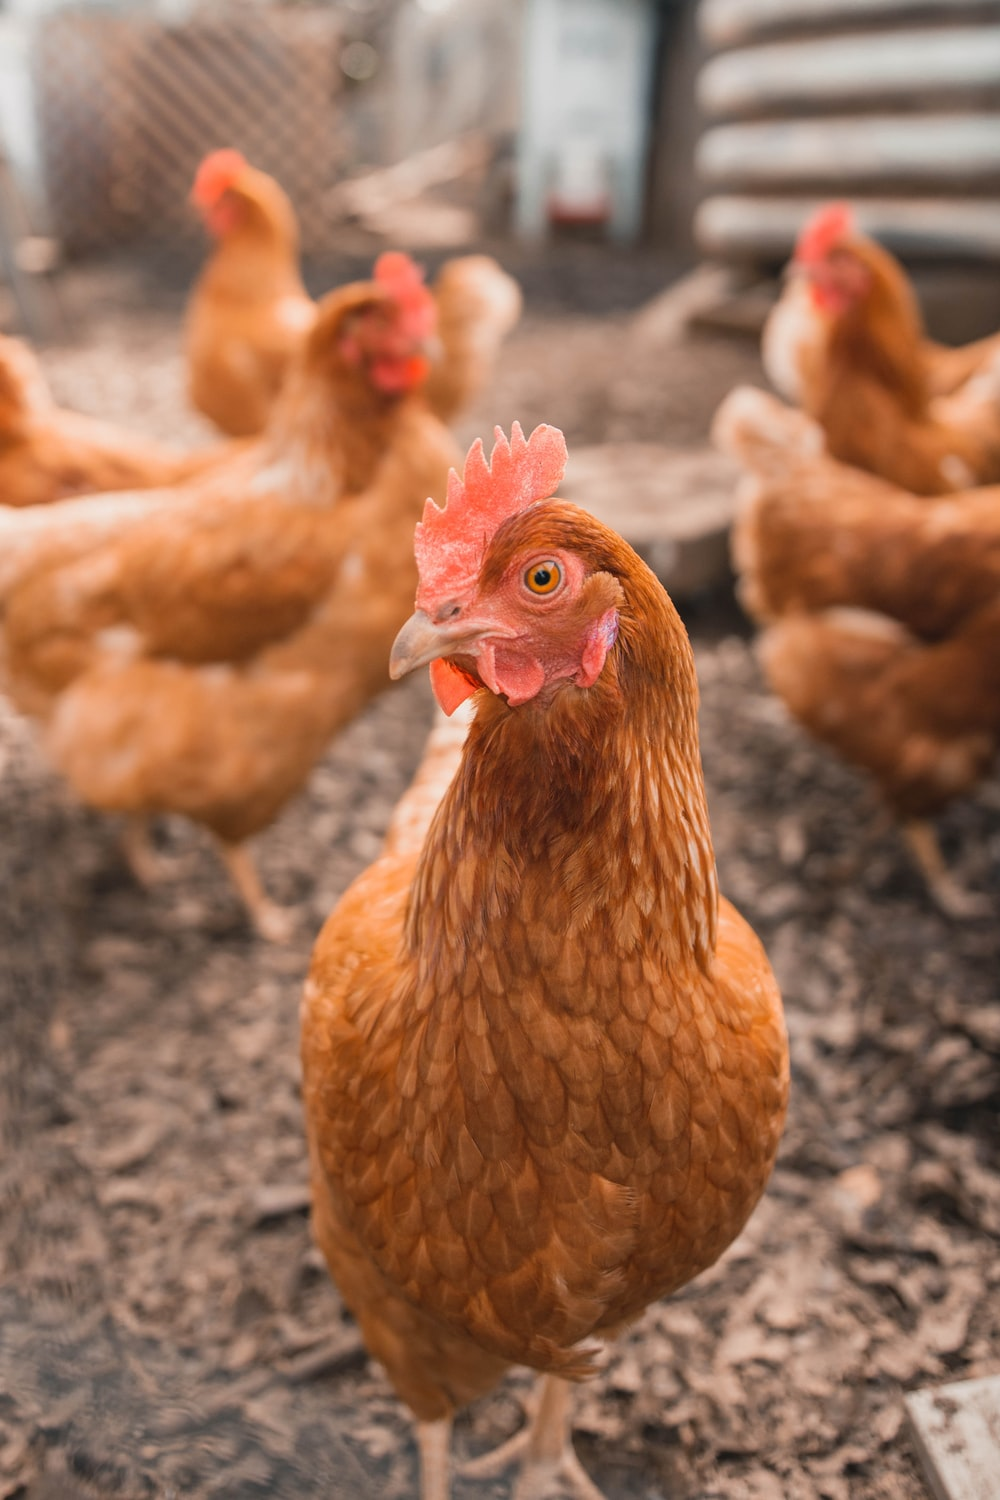 Best 100+ Chicken Pictures   Download Free Images & Stock Photos on Unsplash